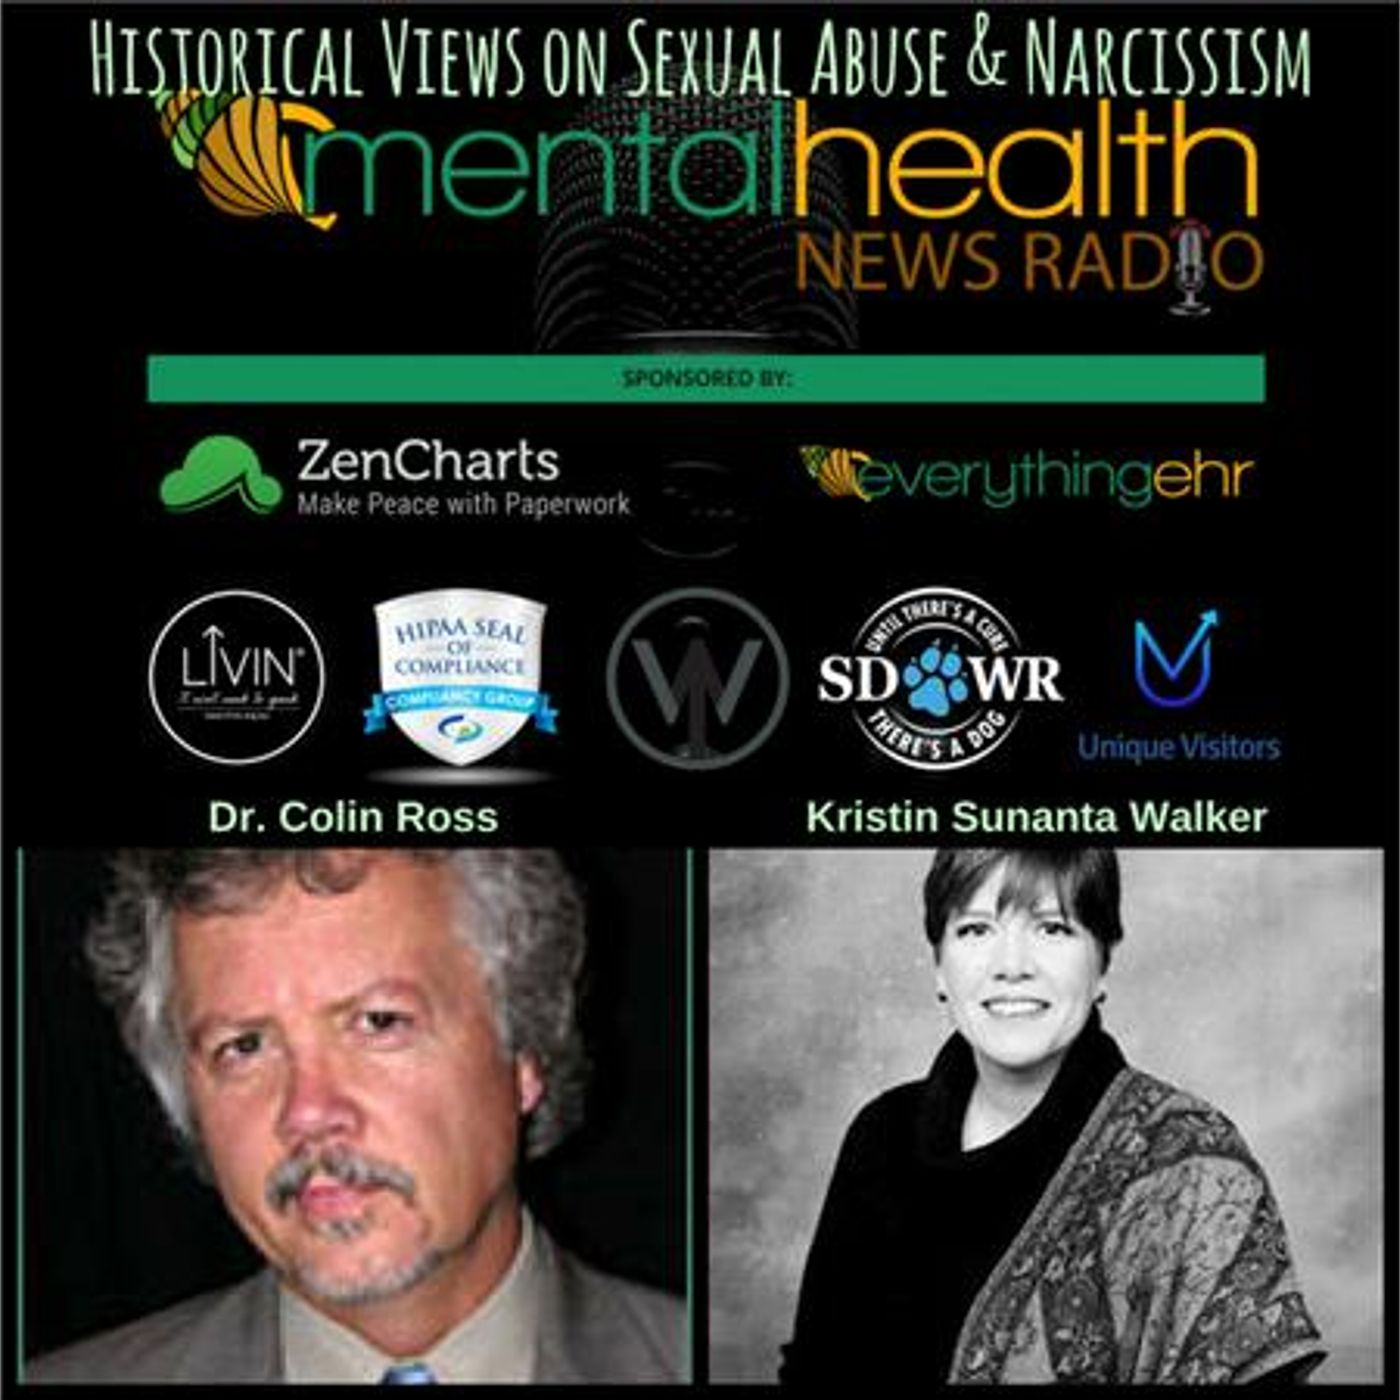 Mental Health News Radio - Historical Views on Sexual Abuse & Narcissism with Dr. Colin Ross